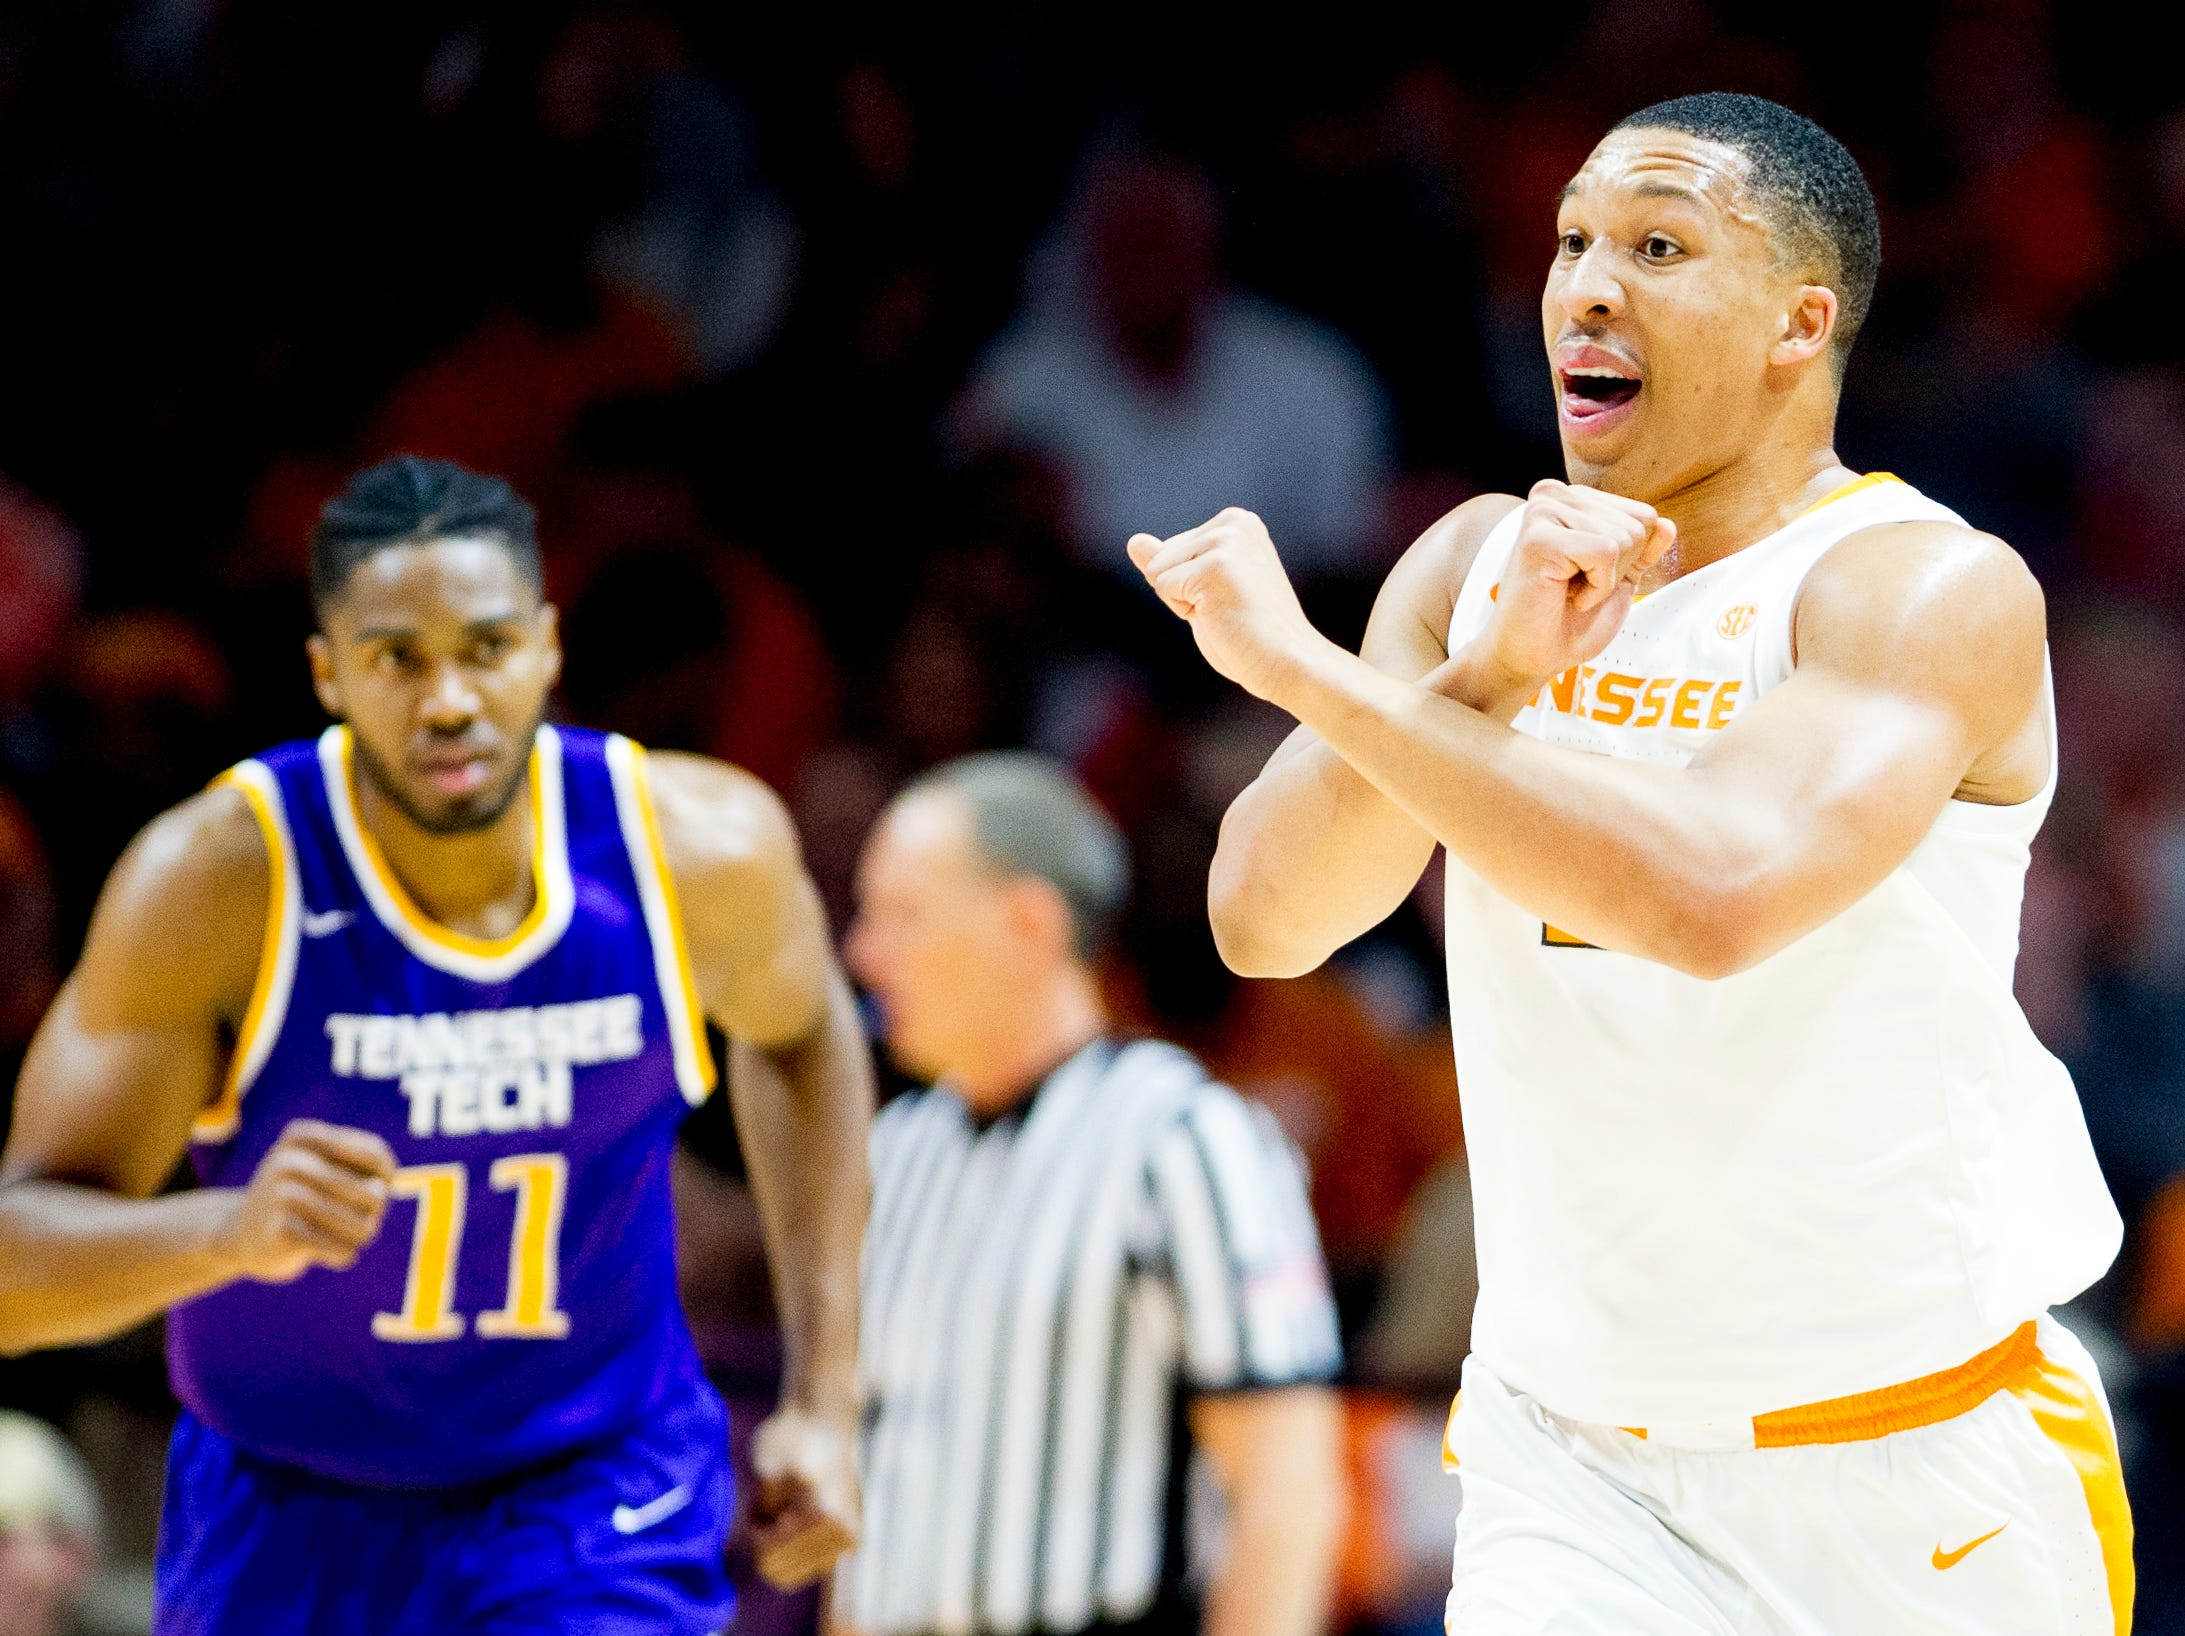 Tennessee forward Grant Williams (2) gestures to teammates during a game between Tennessee and Tennessee Tech at Thompson-Boling Arena in Knoxville, Tennessee on Saturday, December 29, 2018.